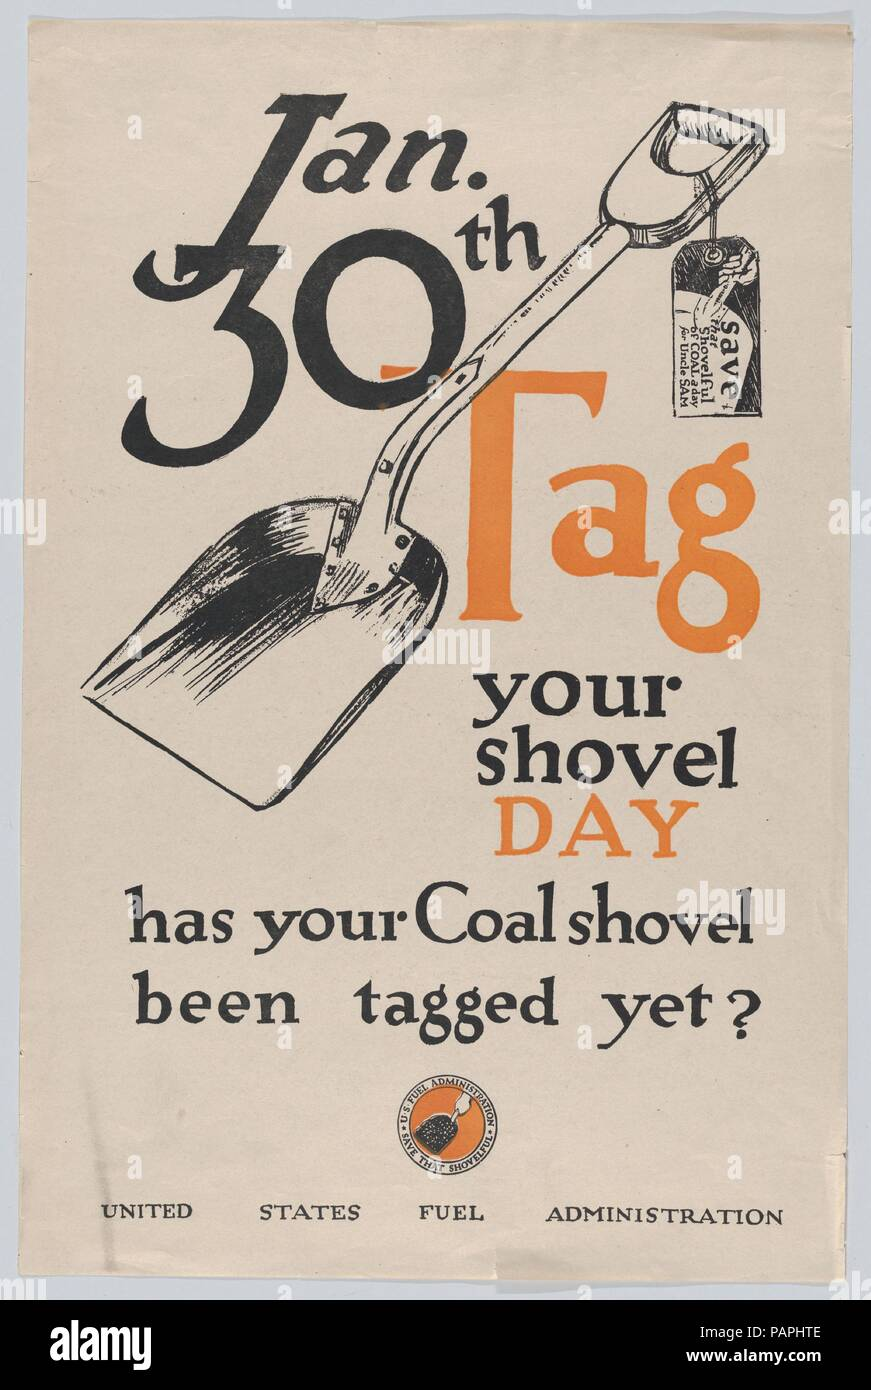 Tag your shovel day. Dimensions: Sheet: 18 15/16 × 12 7/16 in. (48.1 × 31.6 cm). Publisher: Issued by United States Fuel Administration. Date: ca. 1917.  World War I poster. Museum: Metropolitan Museum of Art, New York, USA. - Stock Image